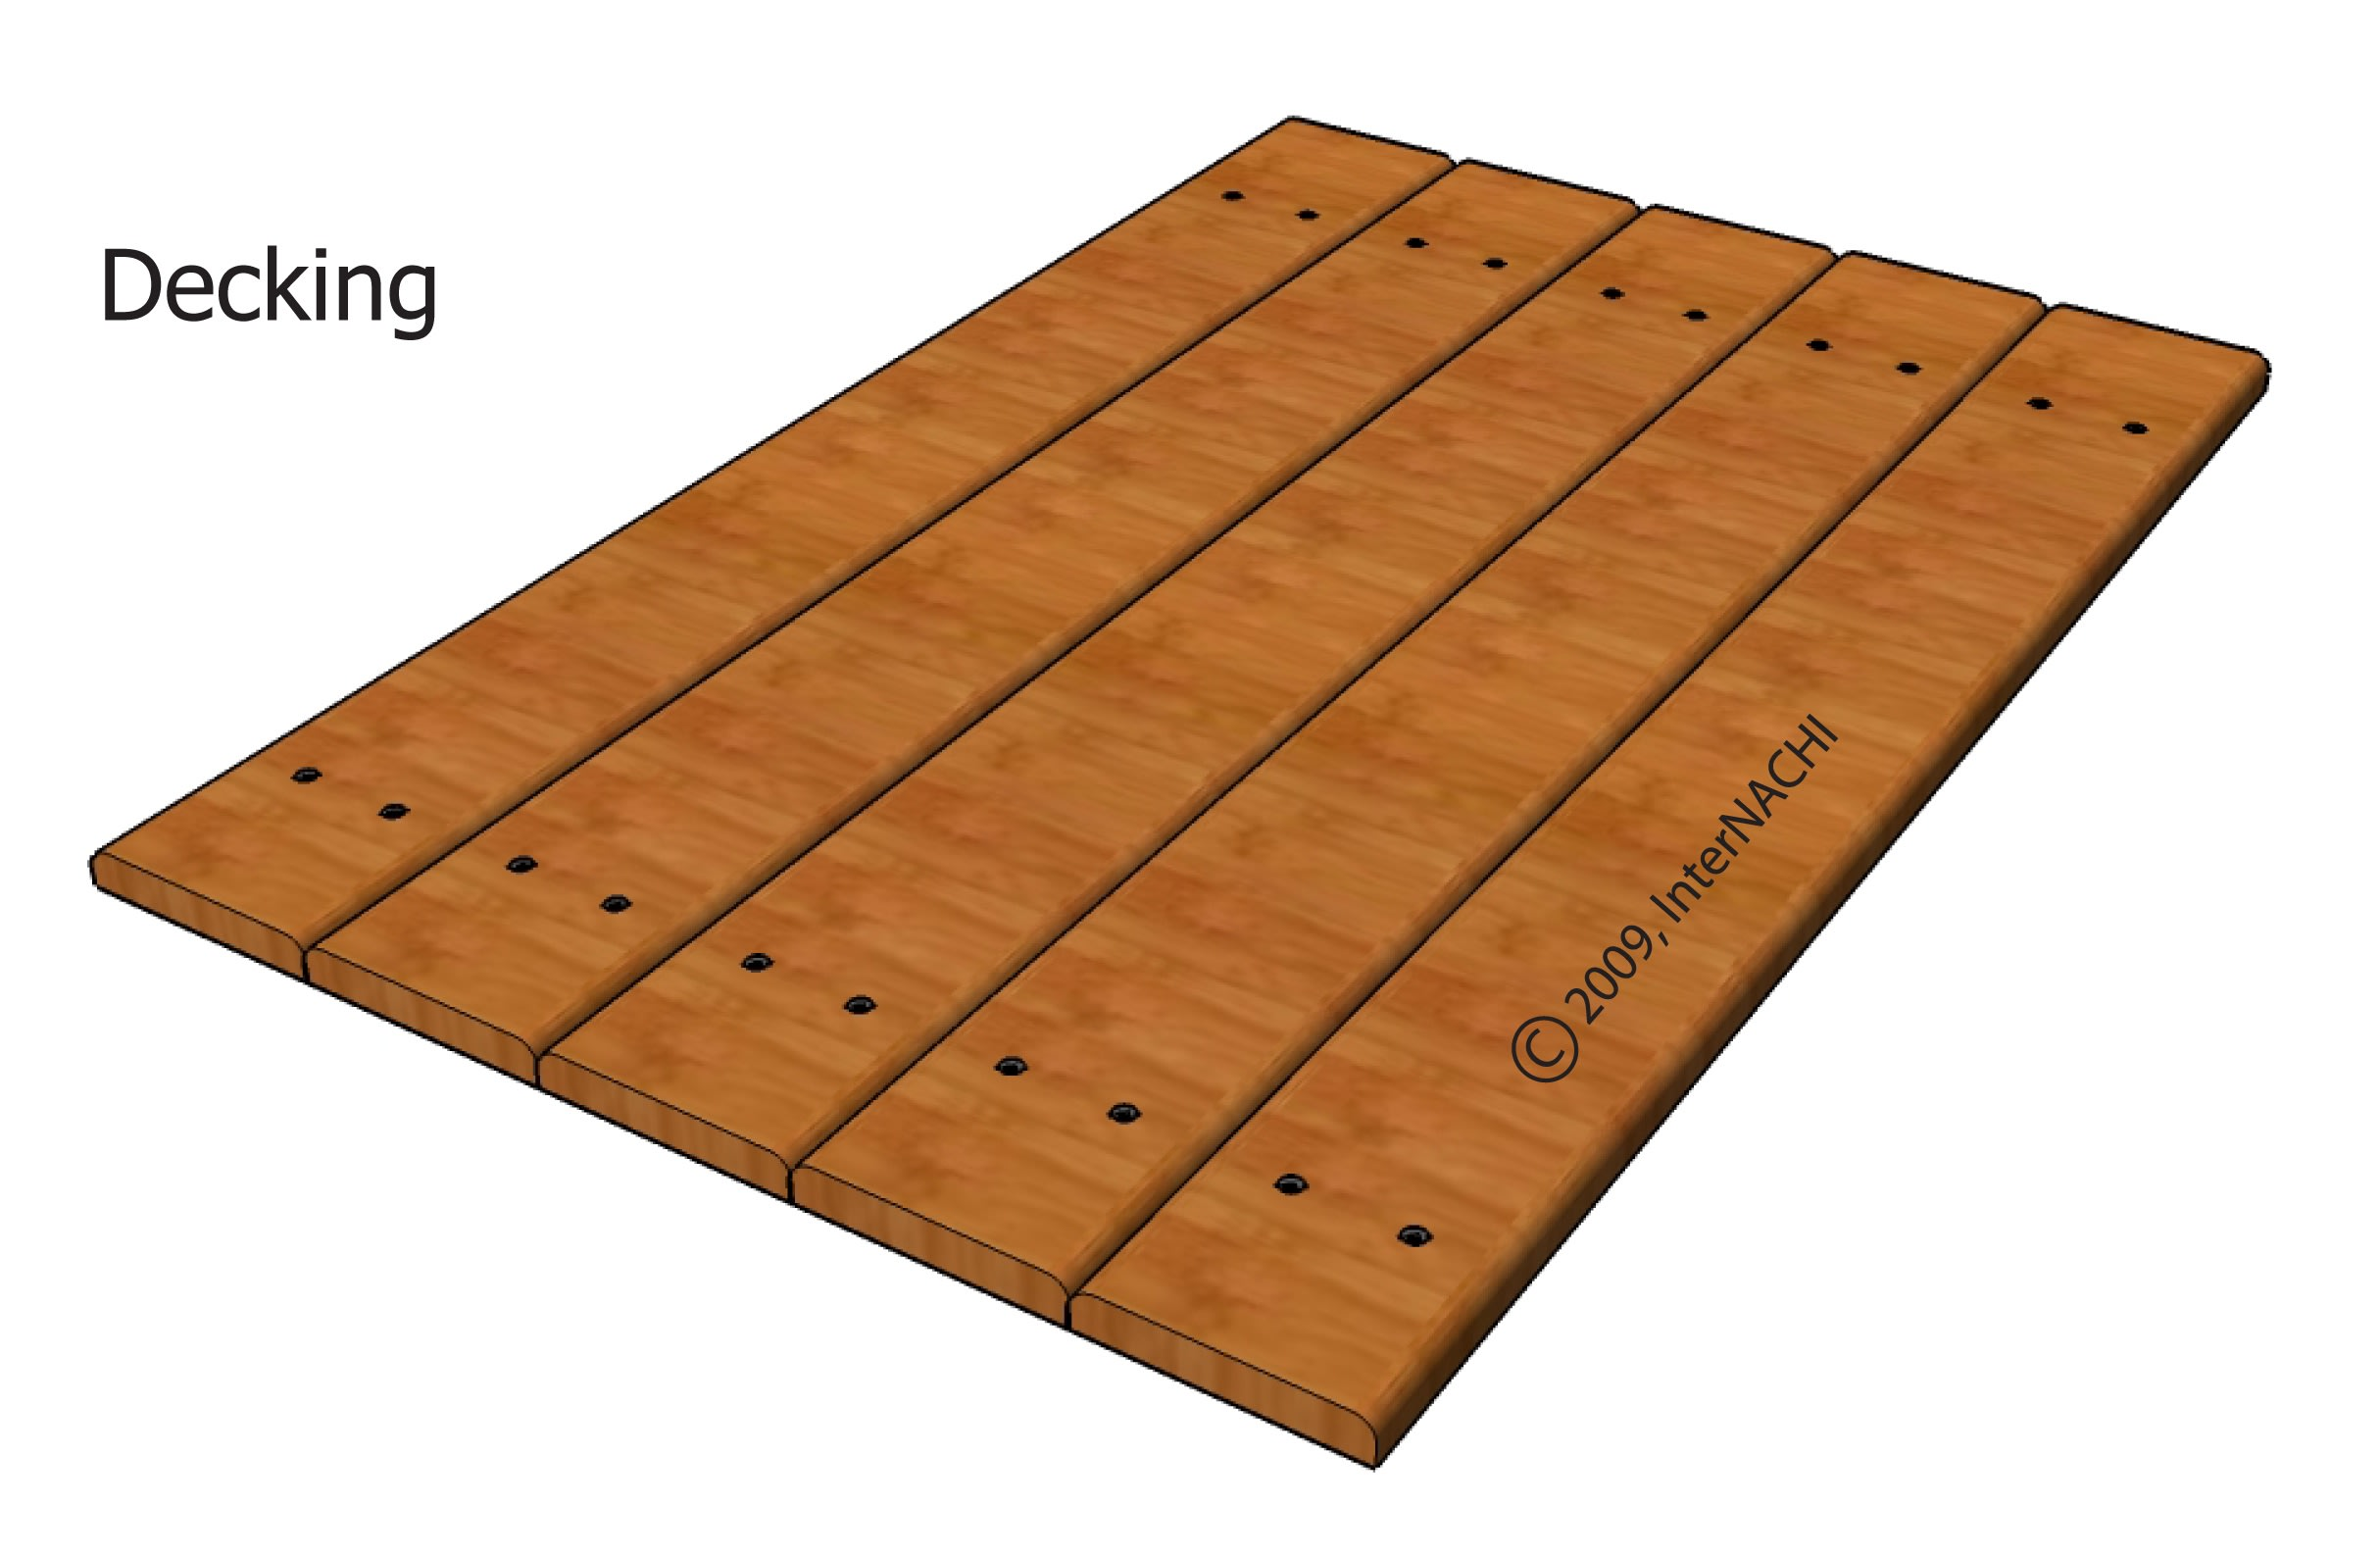 Decking with no gaps (incorrect).